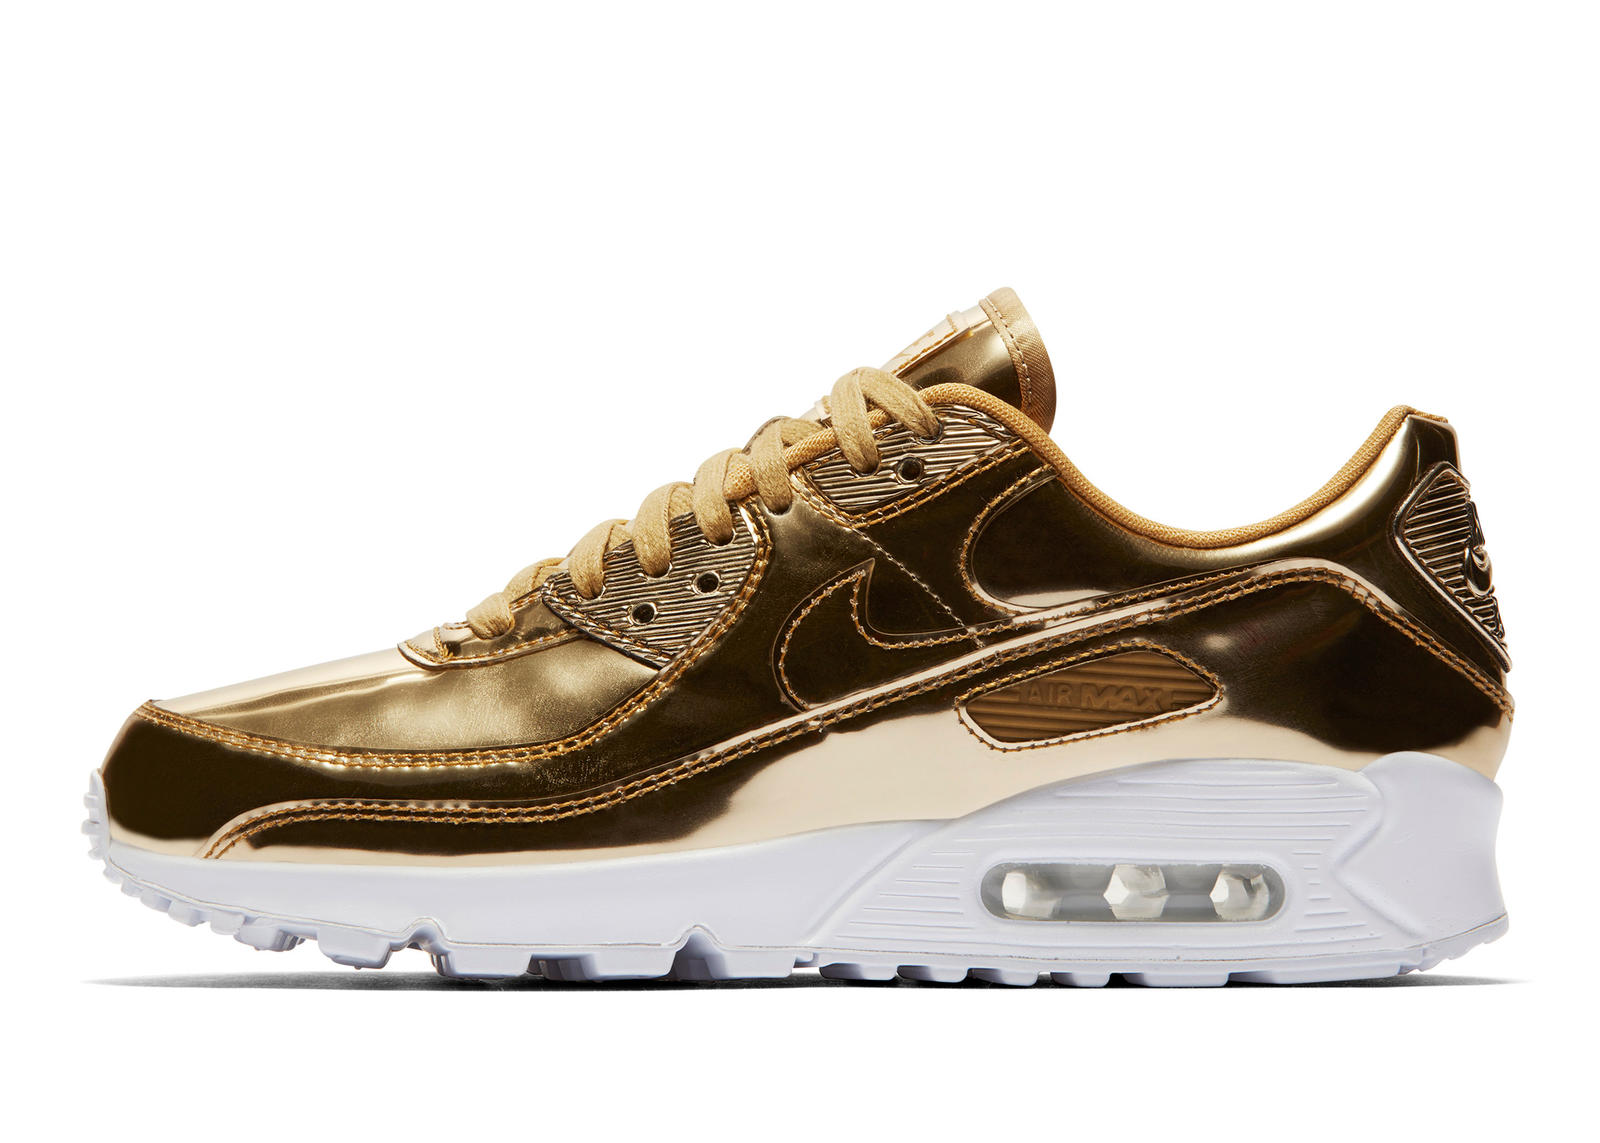 Air Max 90 'Metallic' Pack Gold